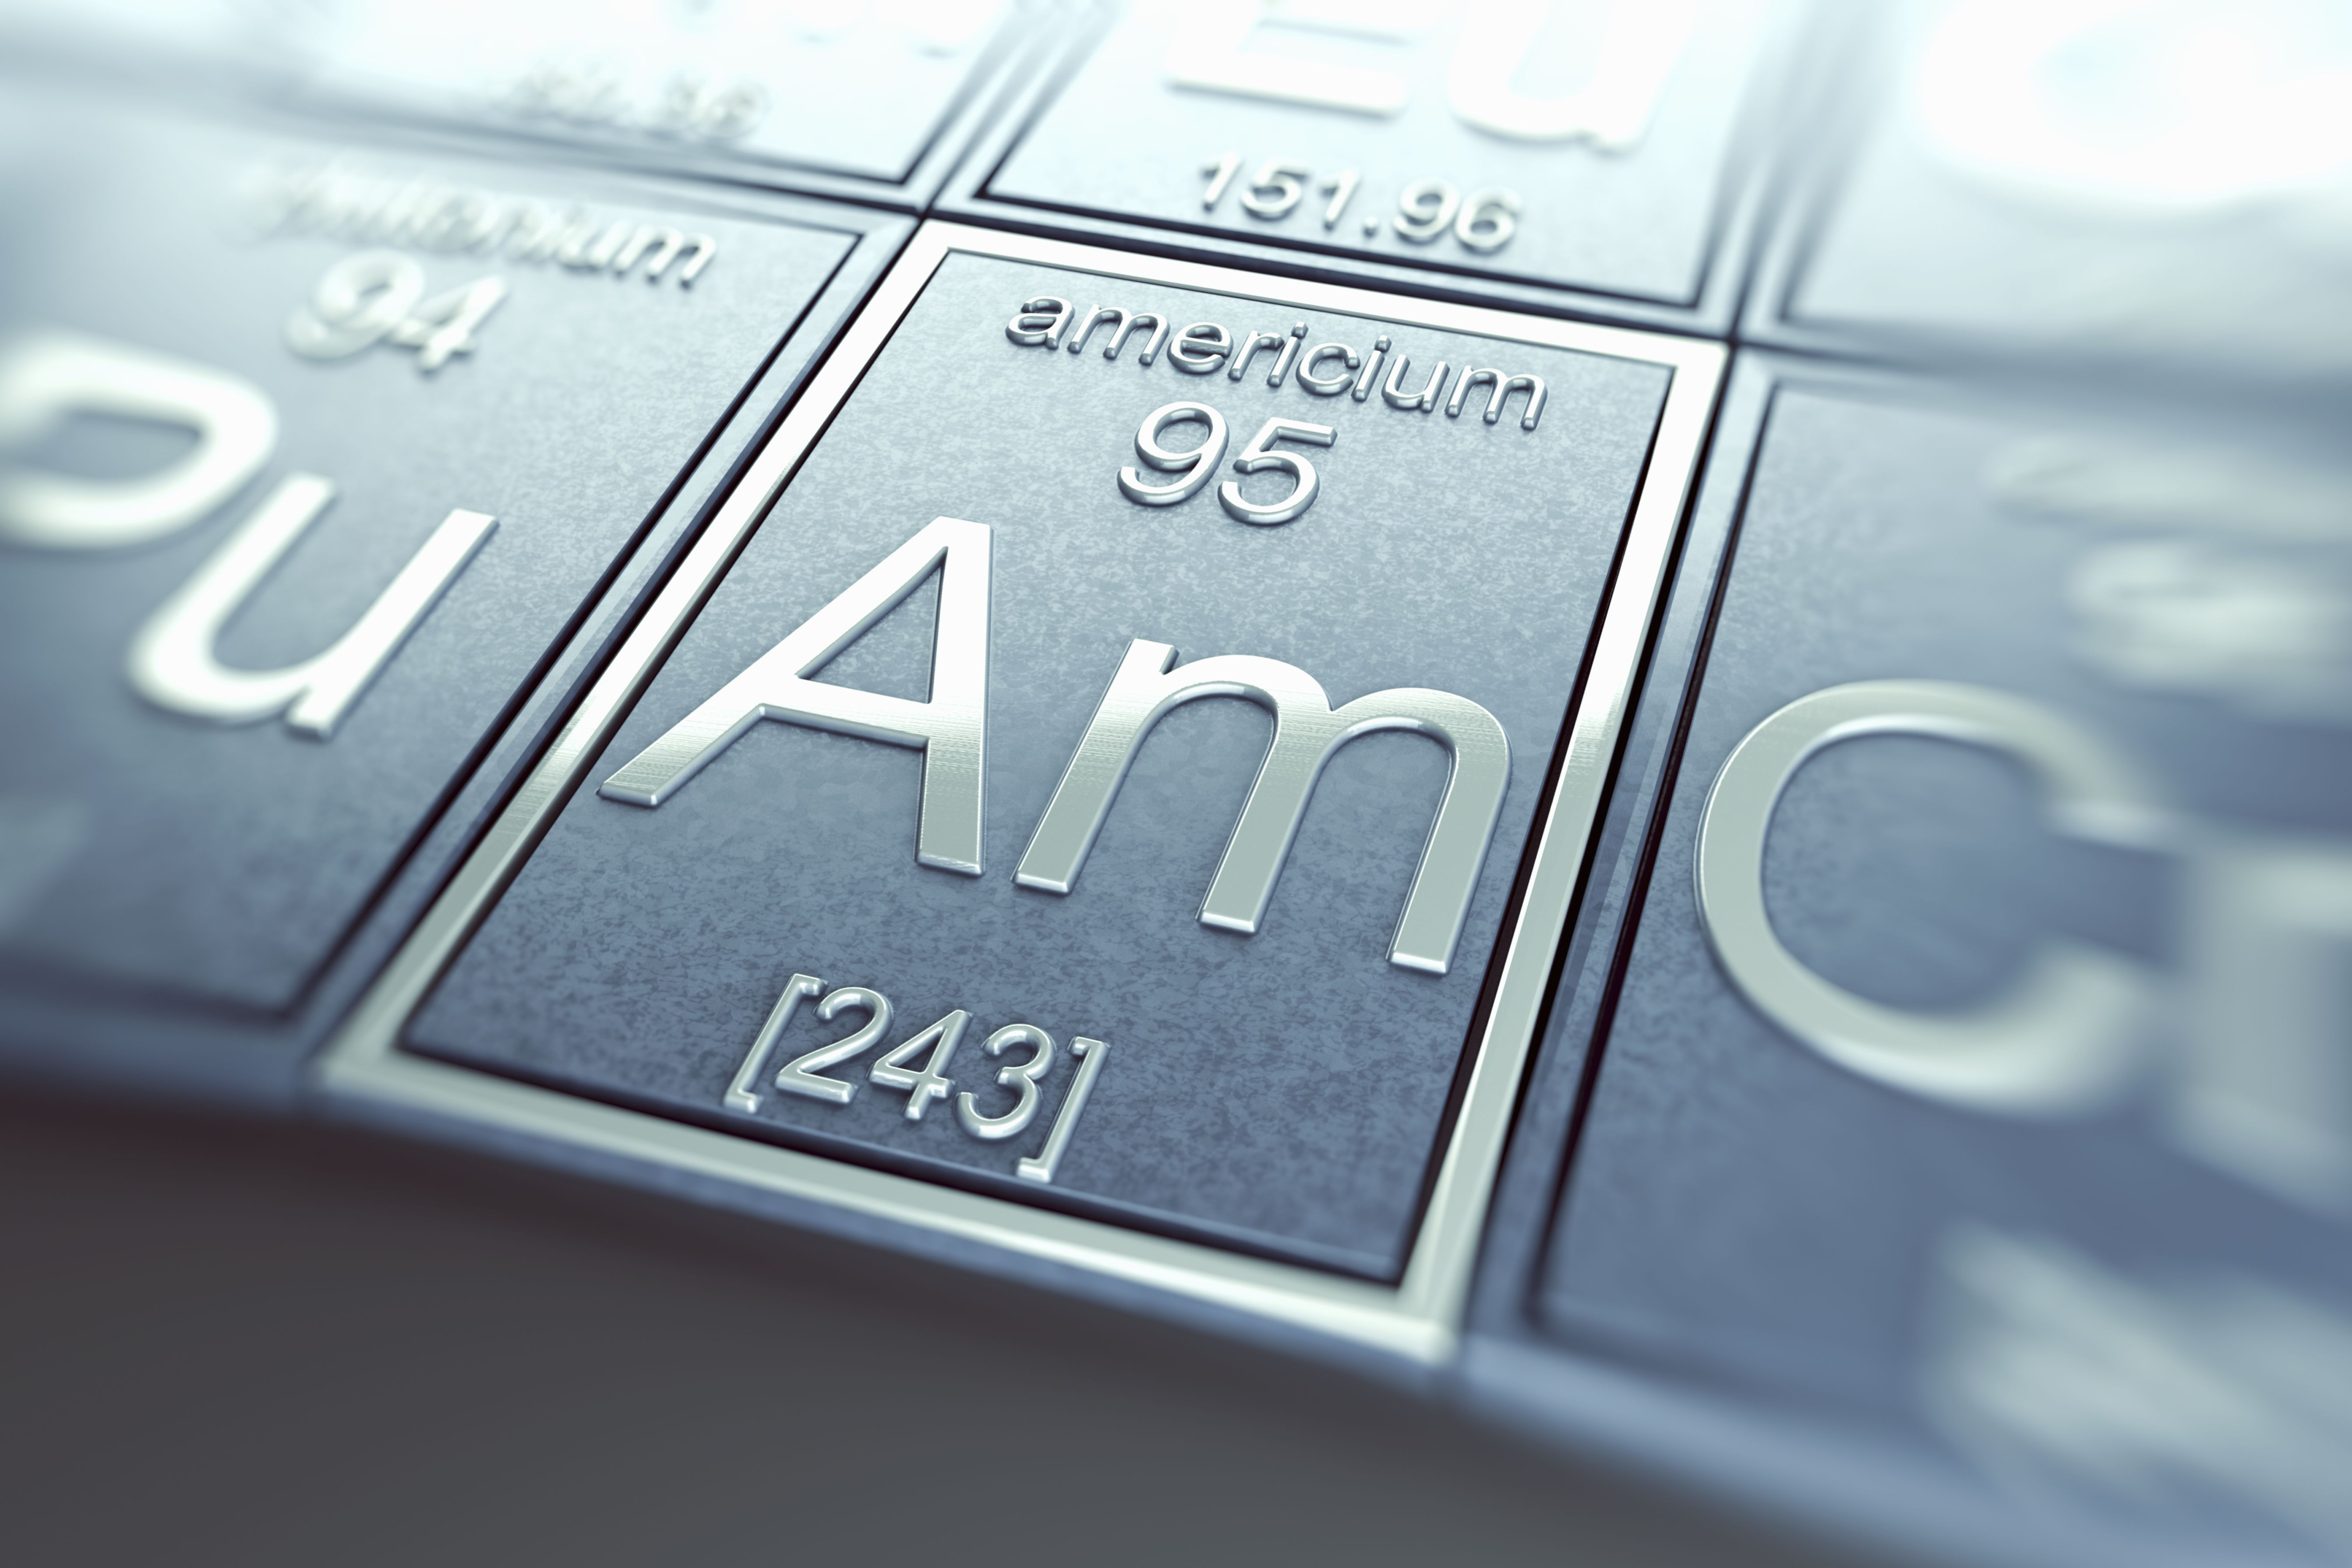 Americium facts for kids